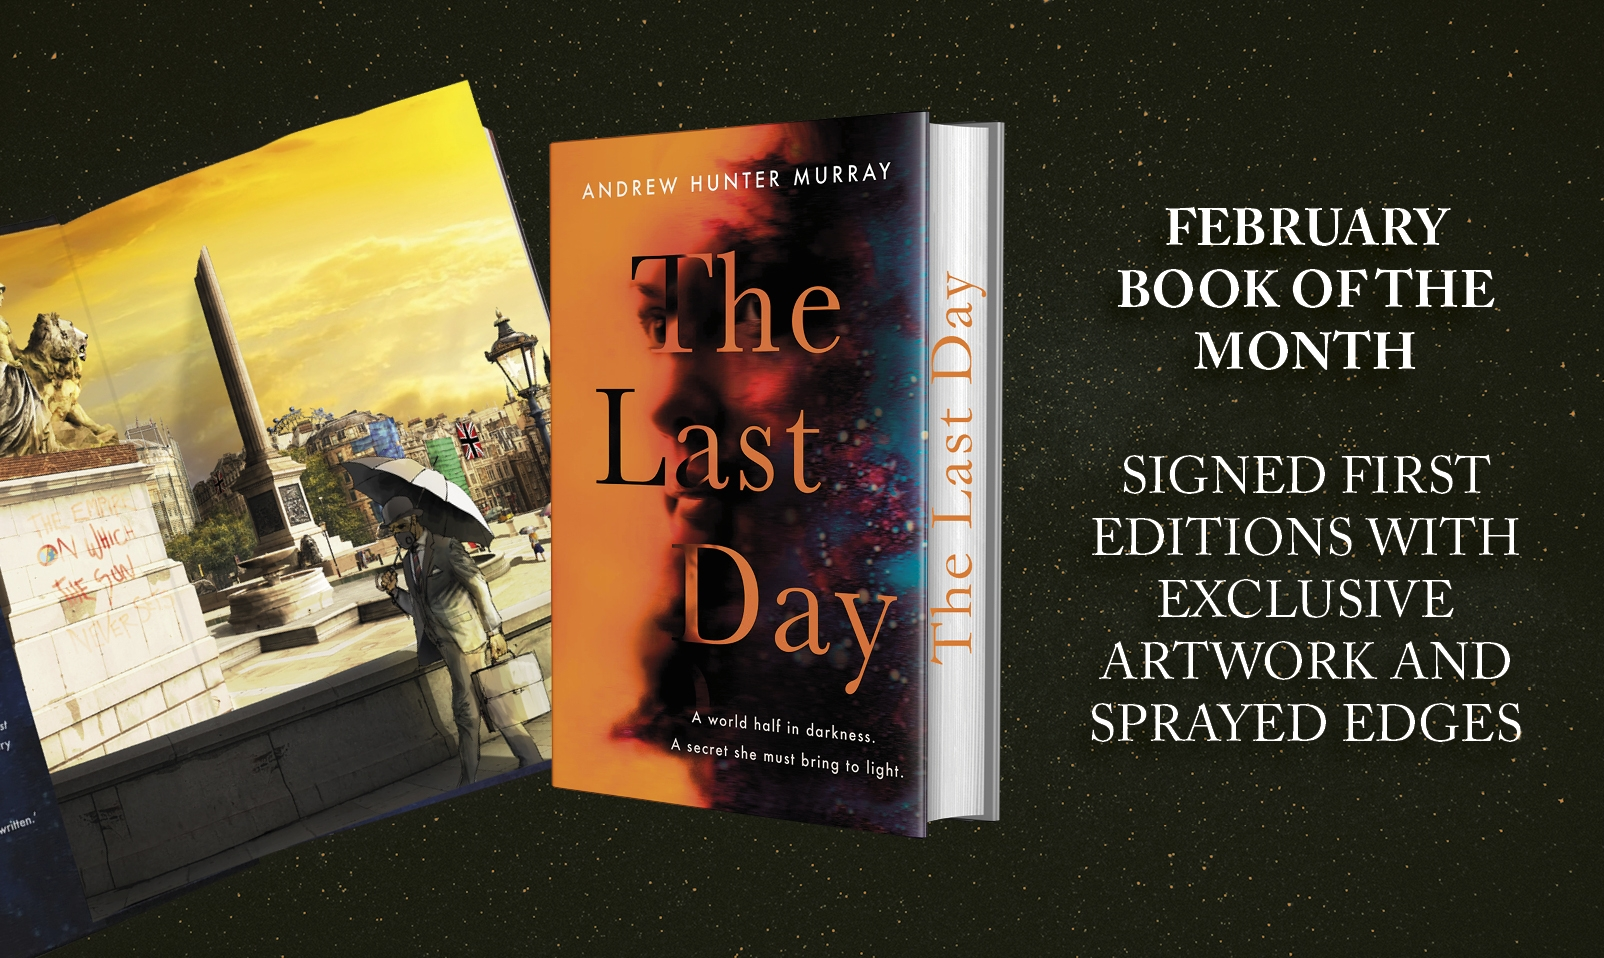 The Last Day - Feburary Book of the Month